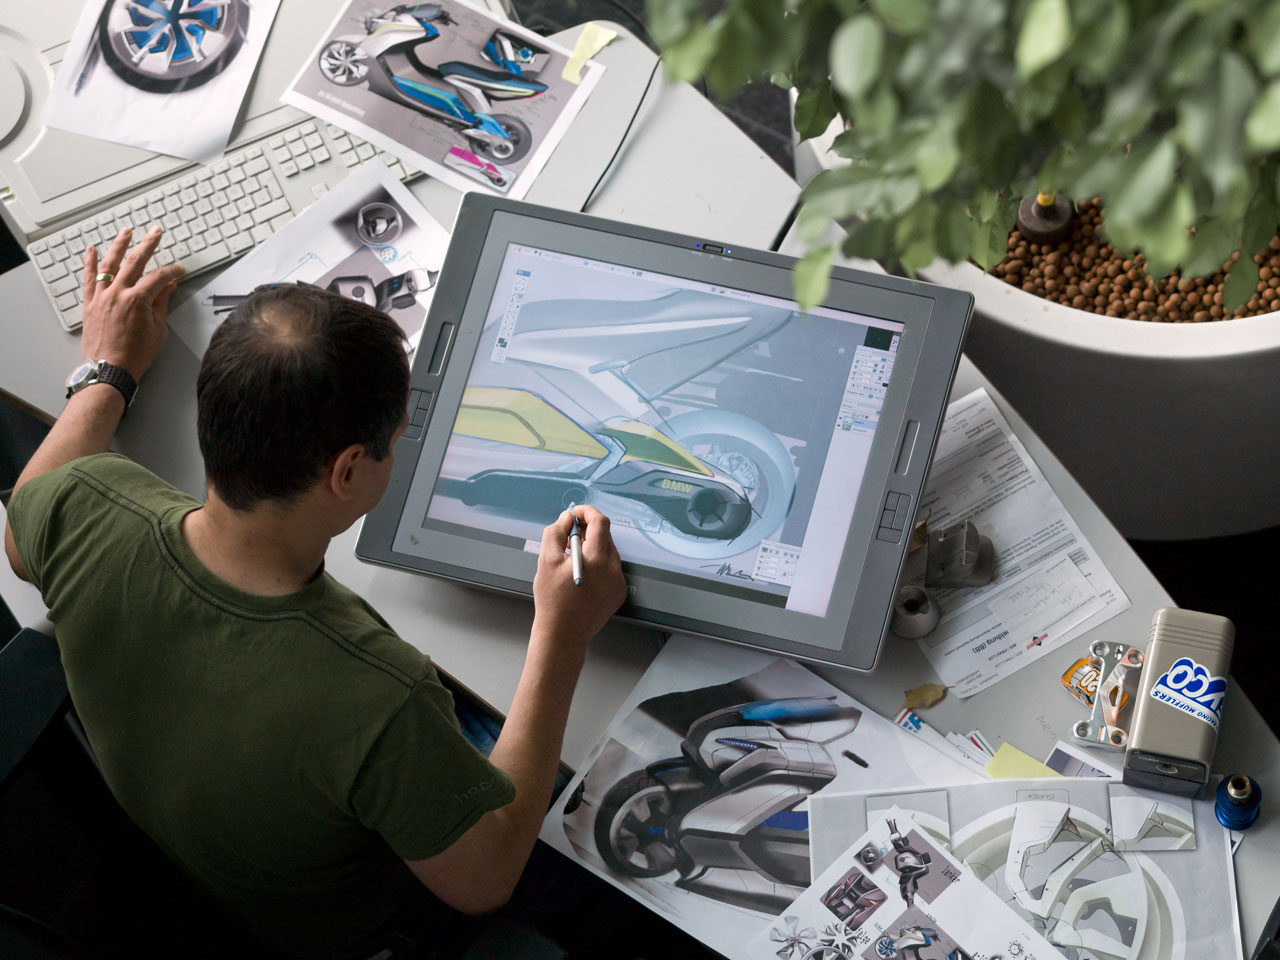 BMW Concept e Digital Design Sketch